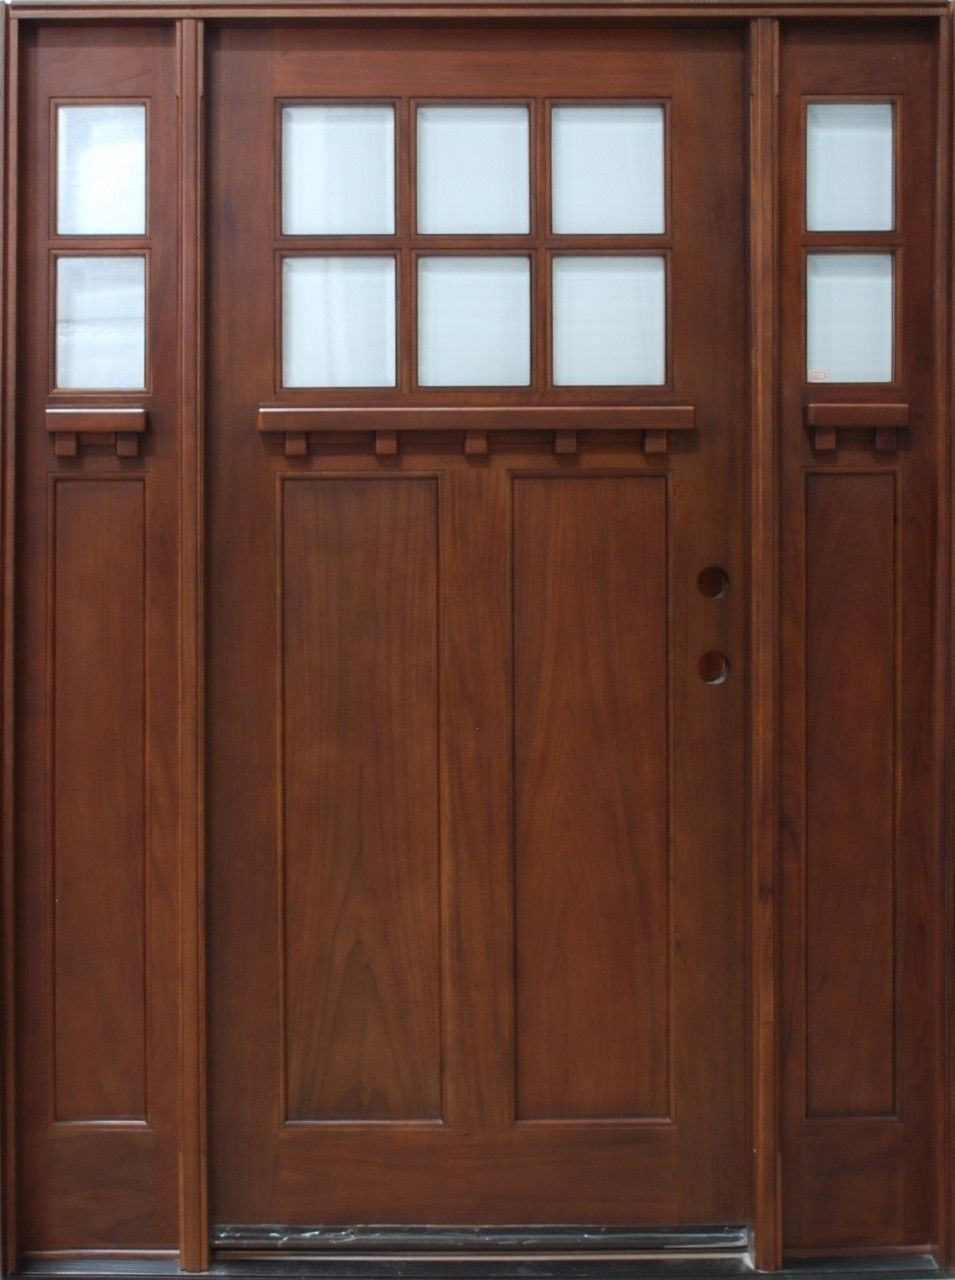 Awesome Discount Door Center Prehung And Prefinished Craftman Entry Door With  Sidelights